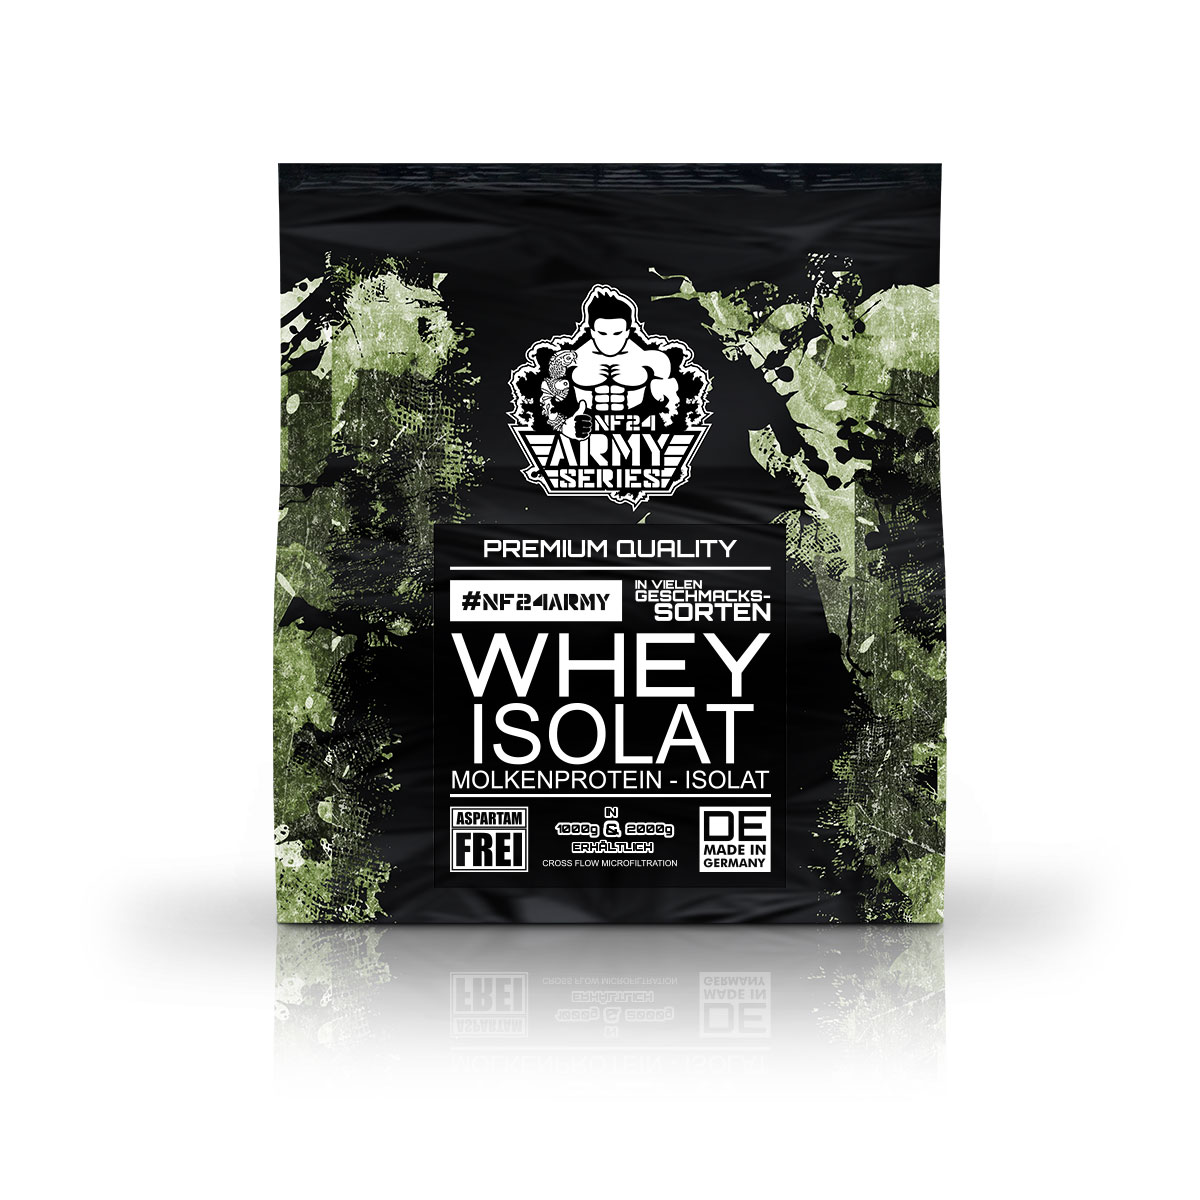 NF24-Packshot-WHEY-ISOLAT58c6a8fe4dc8a